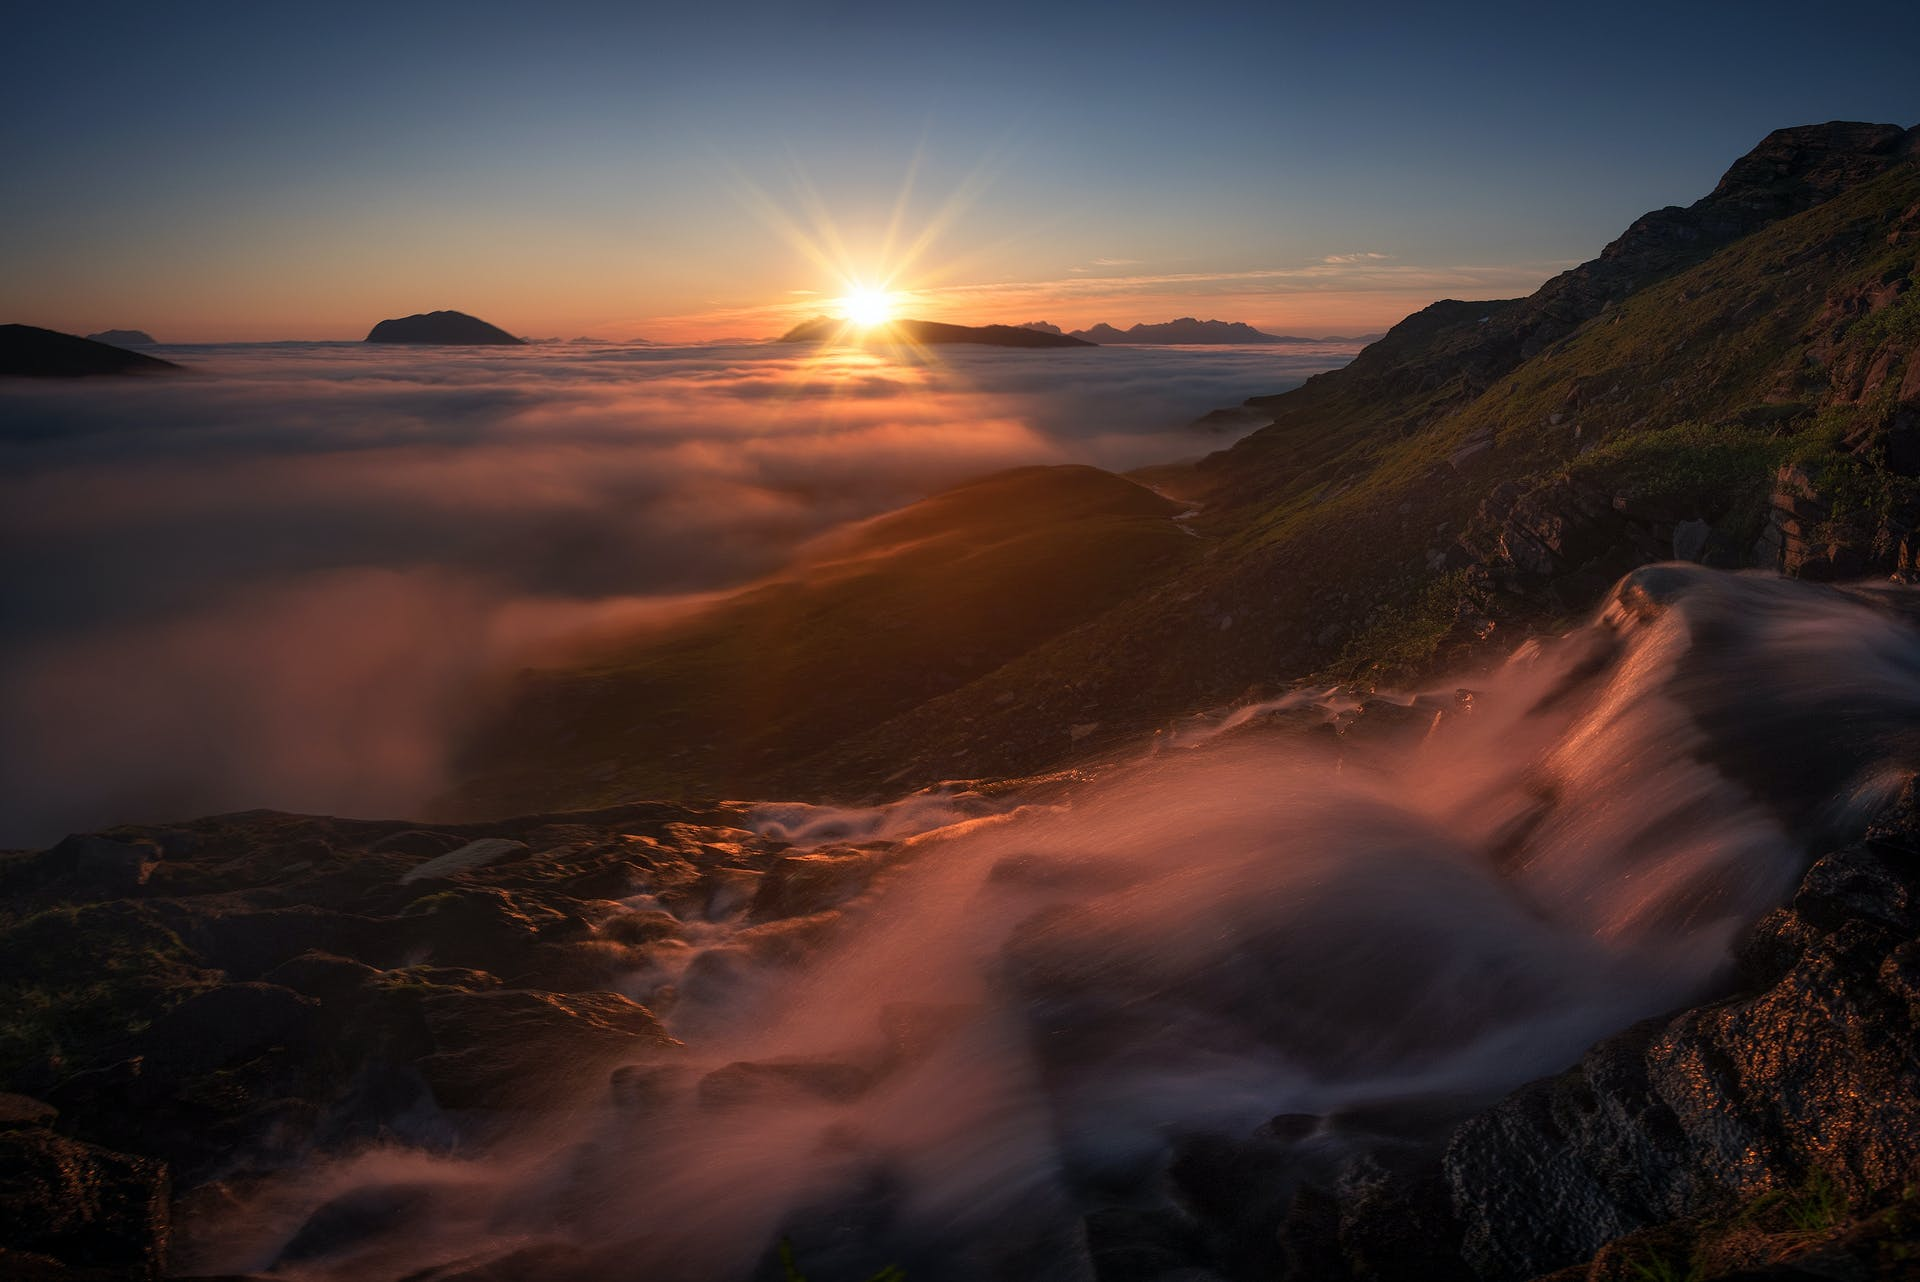 Misty Mountains of Norway Hiking & Camping Adventure